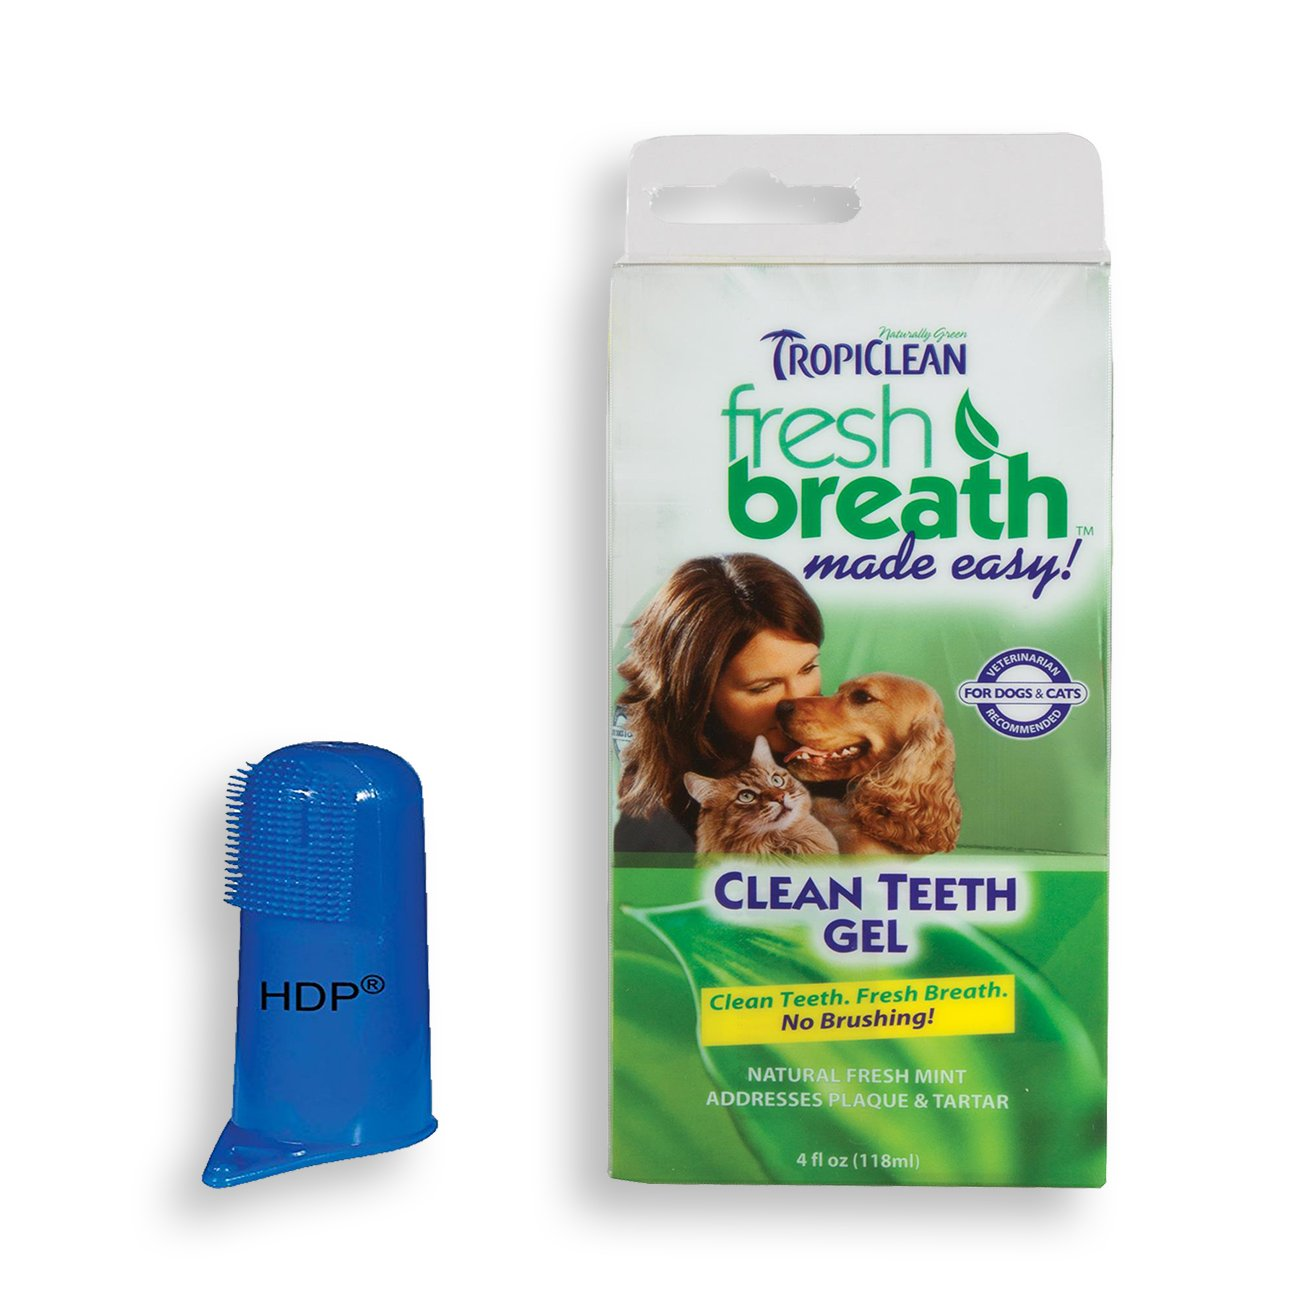 HDP Tropiclean Fresh Breath Clean Teeth Gel Holistic Made in USA